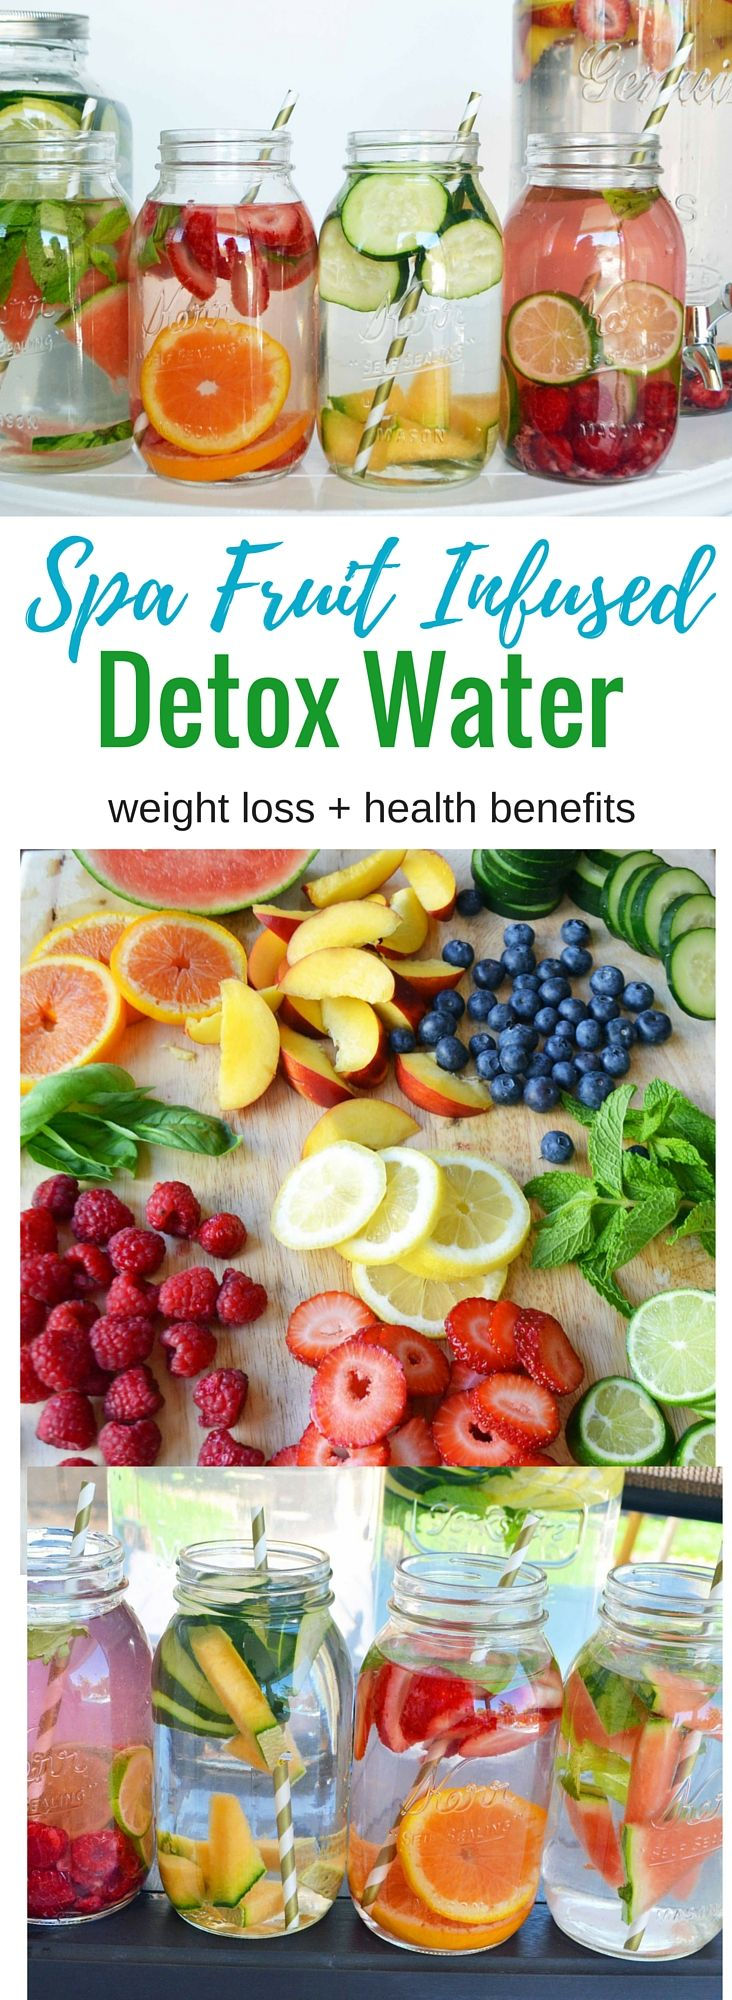 Spa Fruit Infused Detox Water aids in weight loss and has numerous health benefits plus it makes your water taste refreshing and delicious! (flavored water recipes fruit)